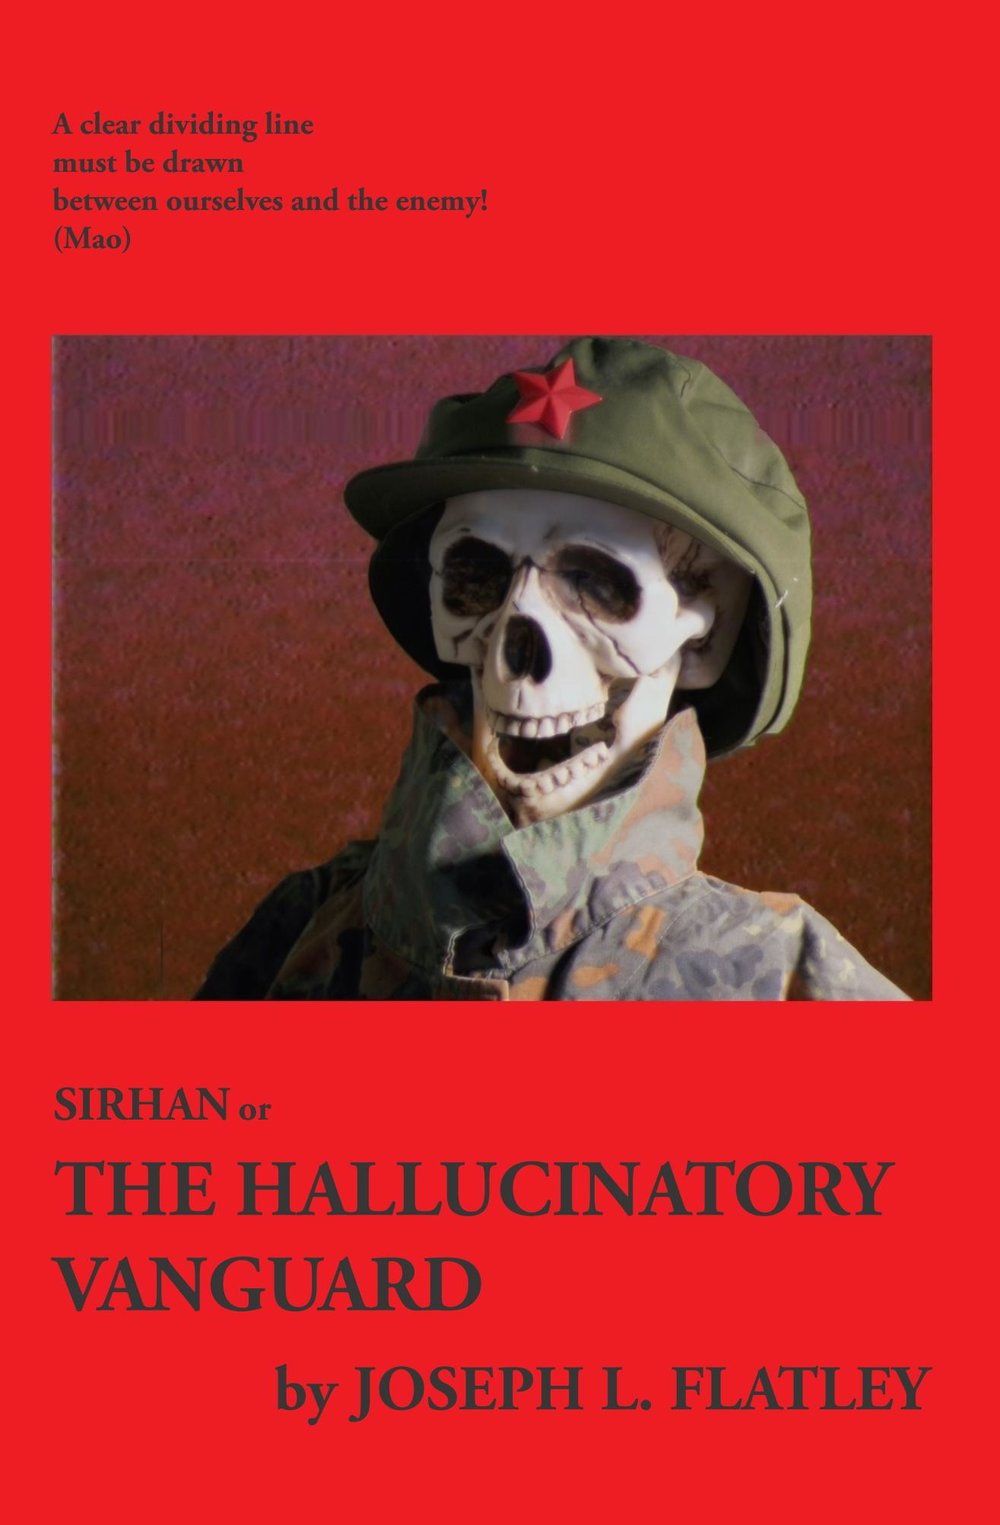 Sirhan: Or, the Hallucinatory Vanguard - Available now from Amazon (link) and wherever fine books are sold.